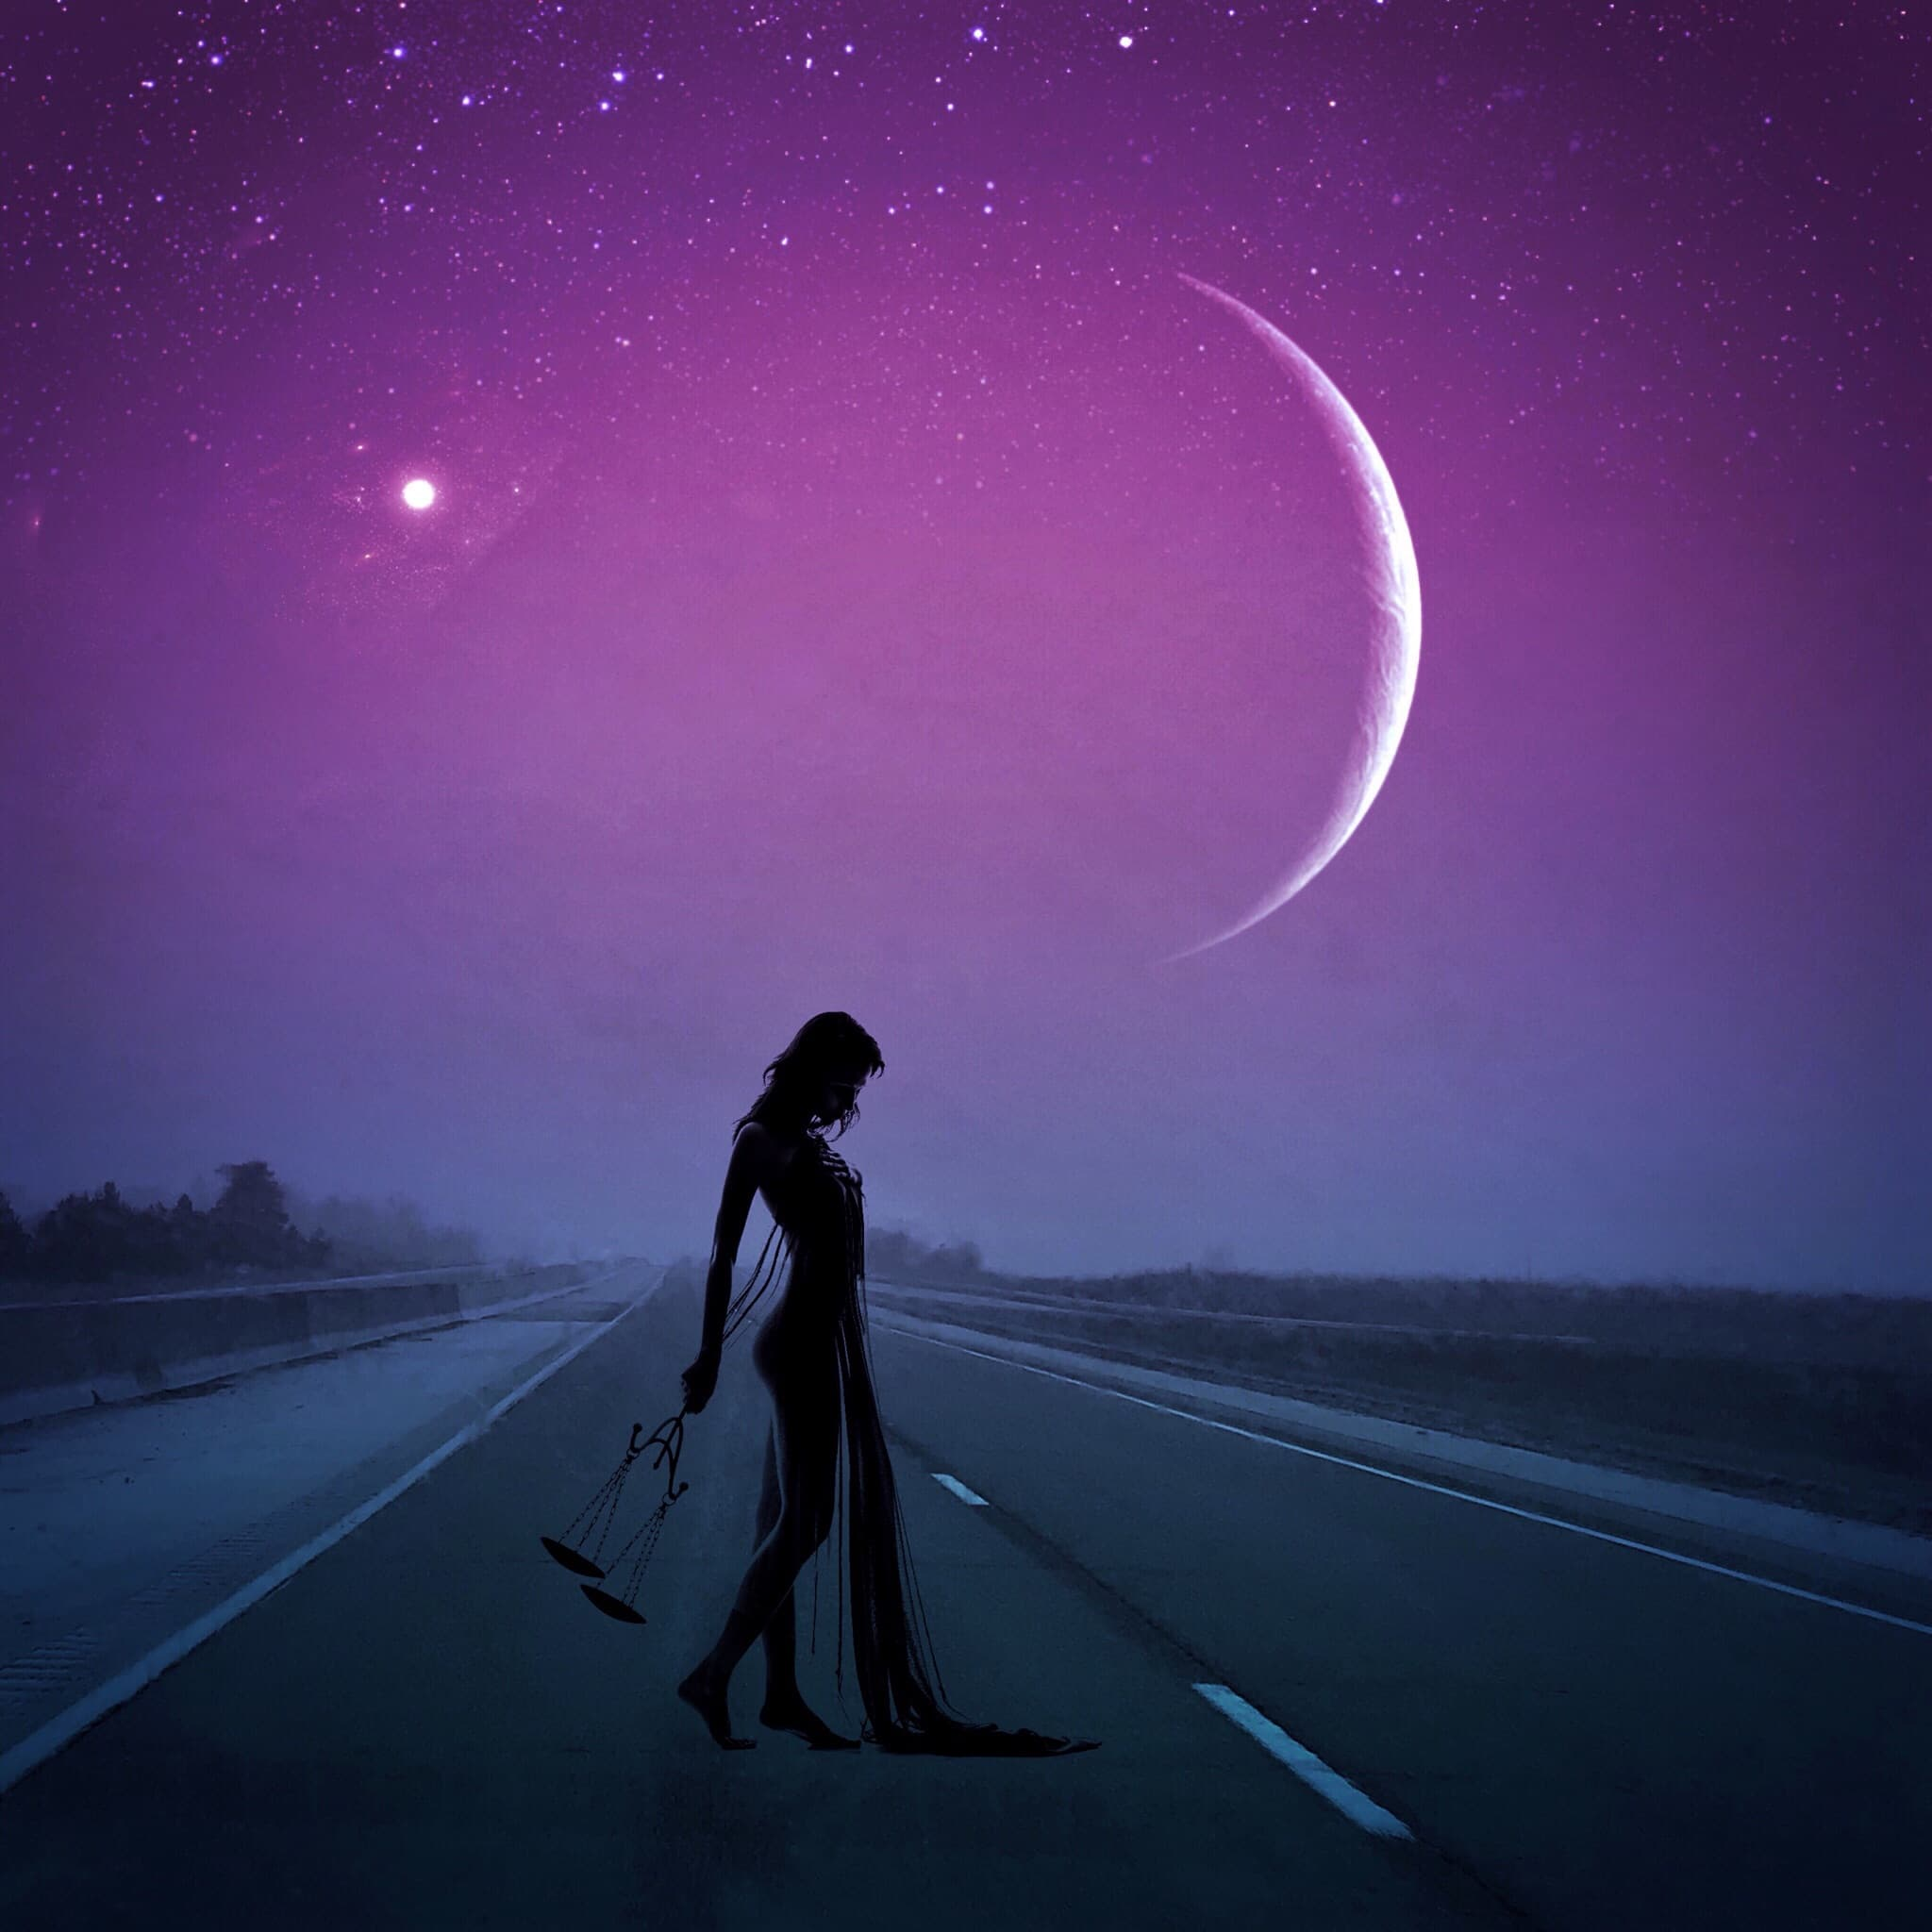 October 16 2020 New Moon in Libra – Balancing the Scales